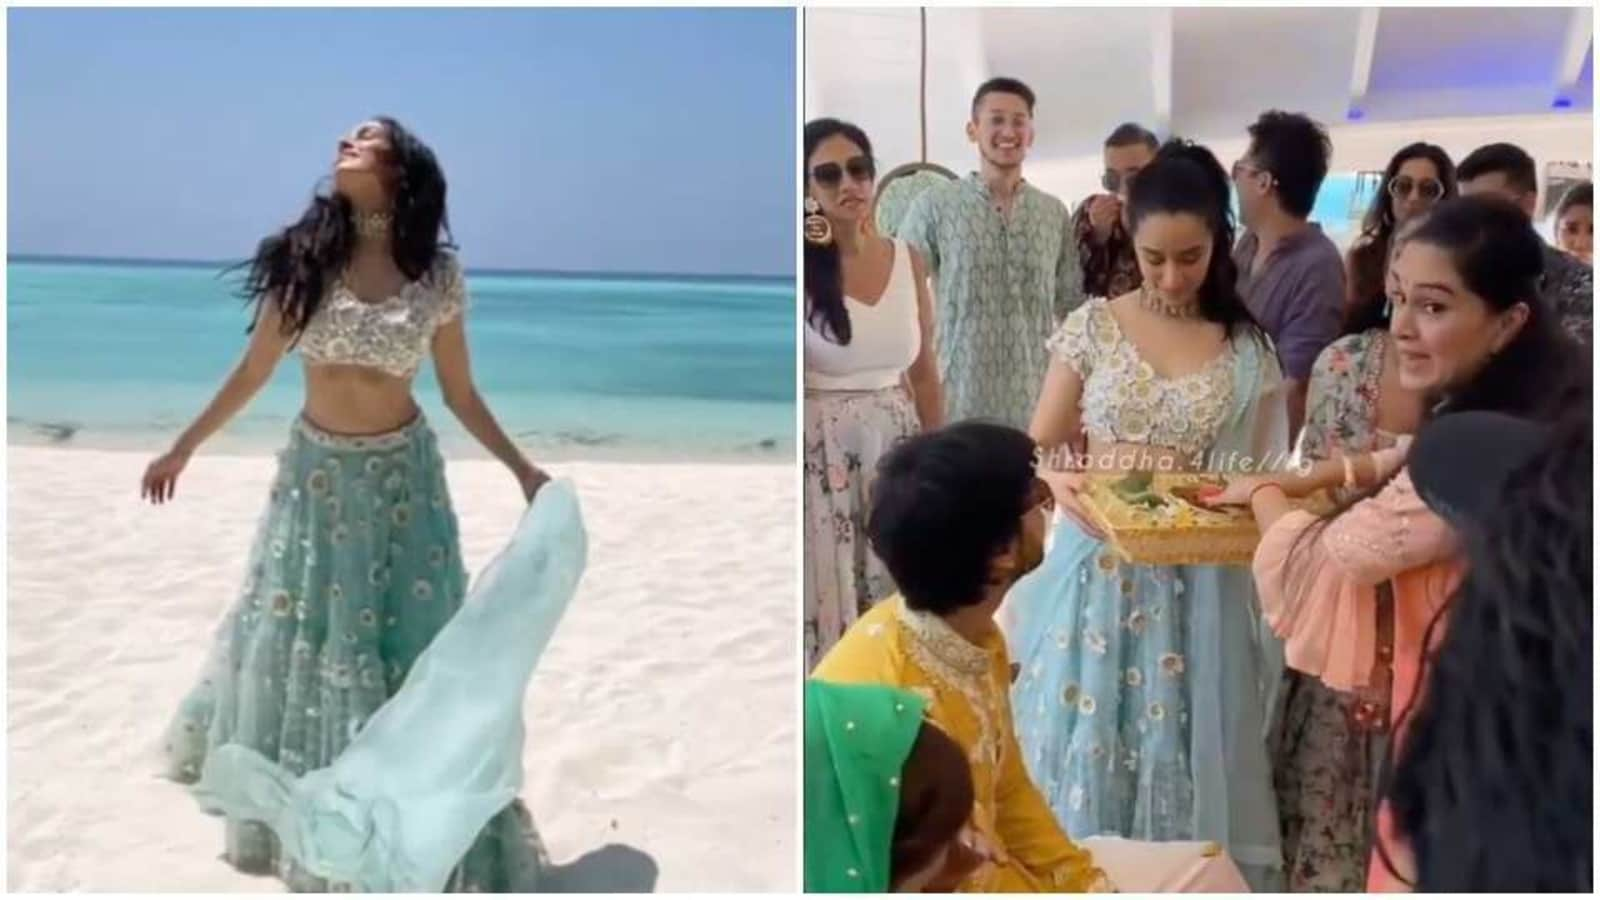 Shraddha Kapoor twins with sea at cousin's wedding in Maldives; aunt Padmini Kolhapure, Rohan Shrestha attend. See pics - Hindustan Times